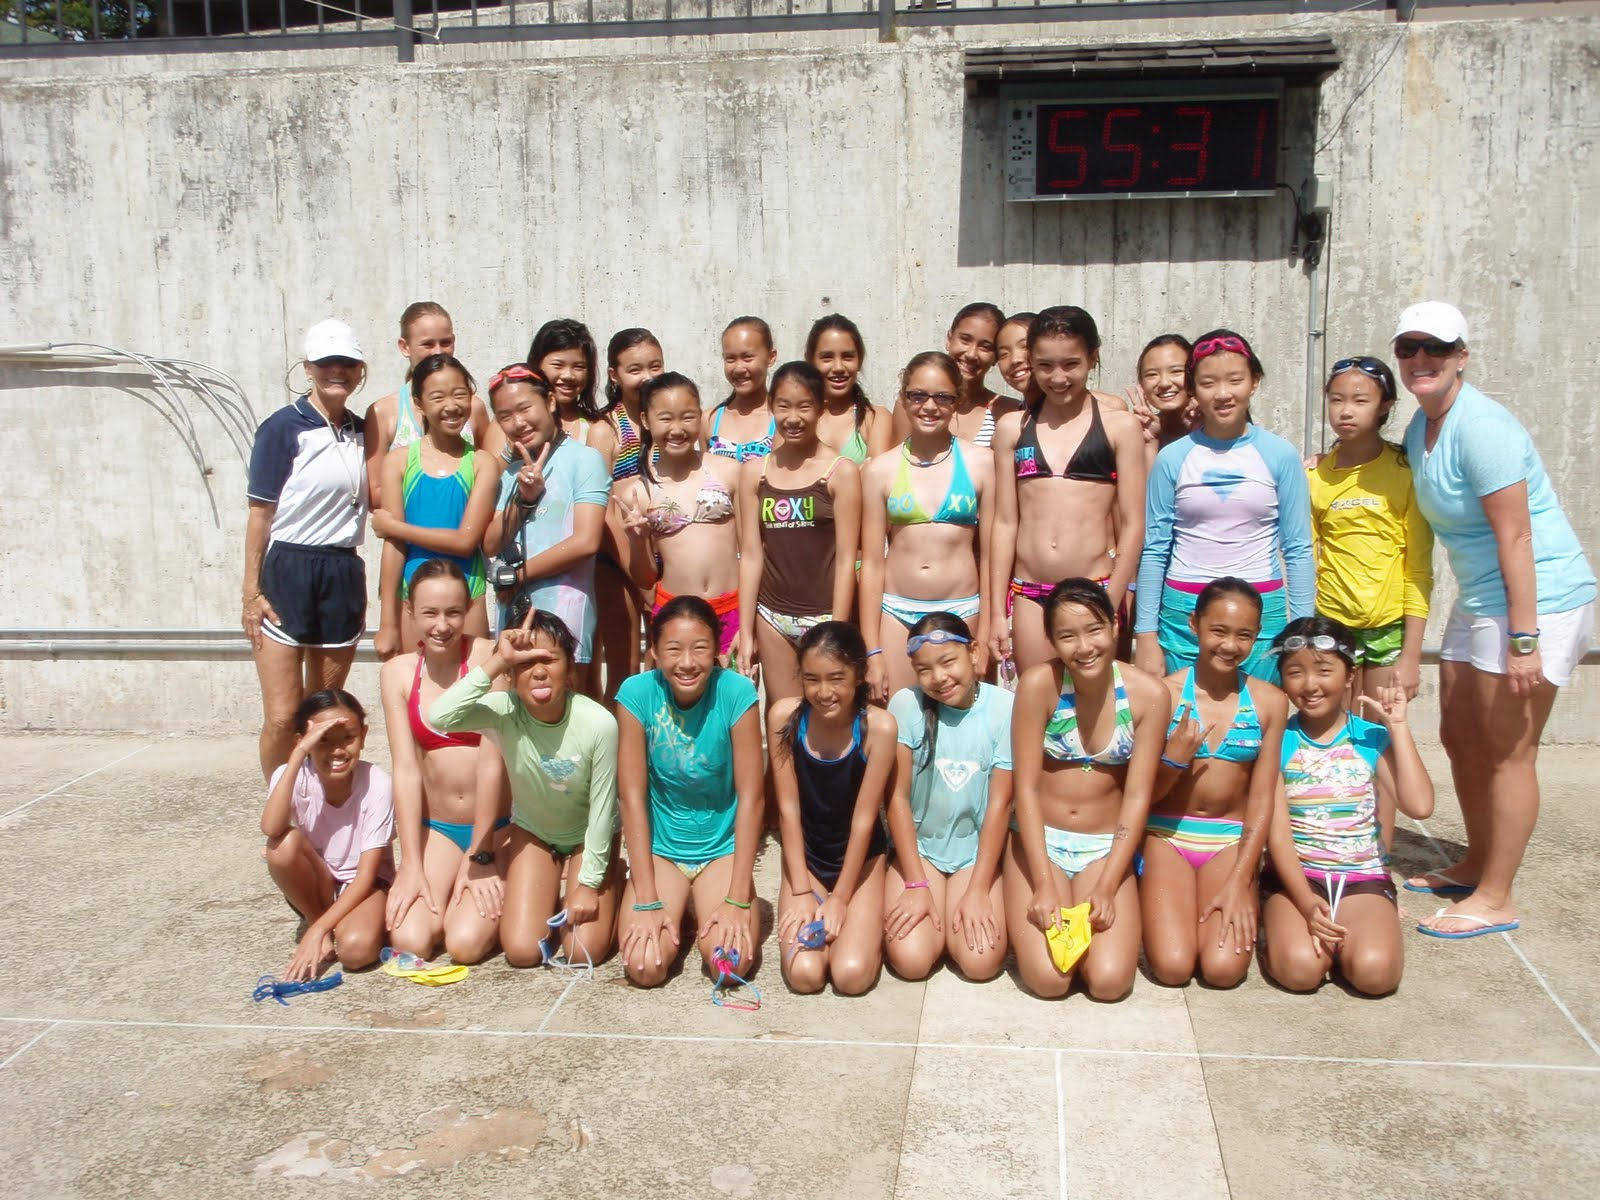 Naked 6th grade girls hardcore galleries